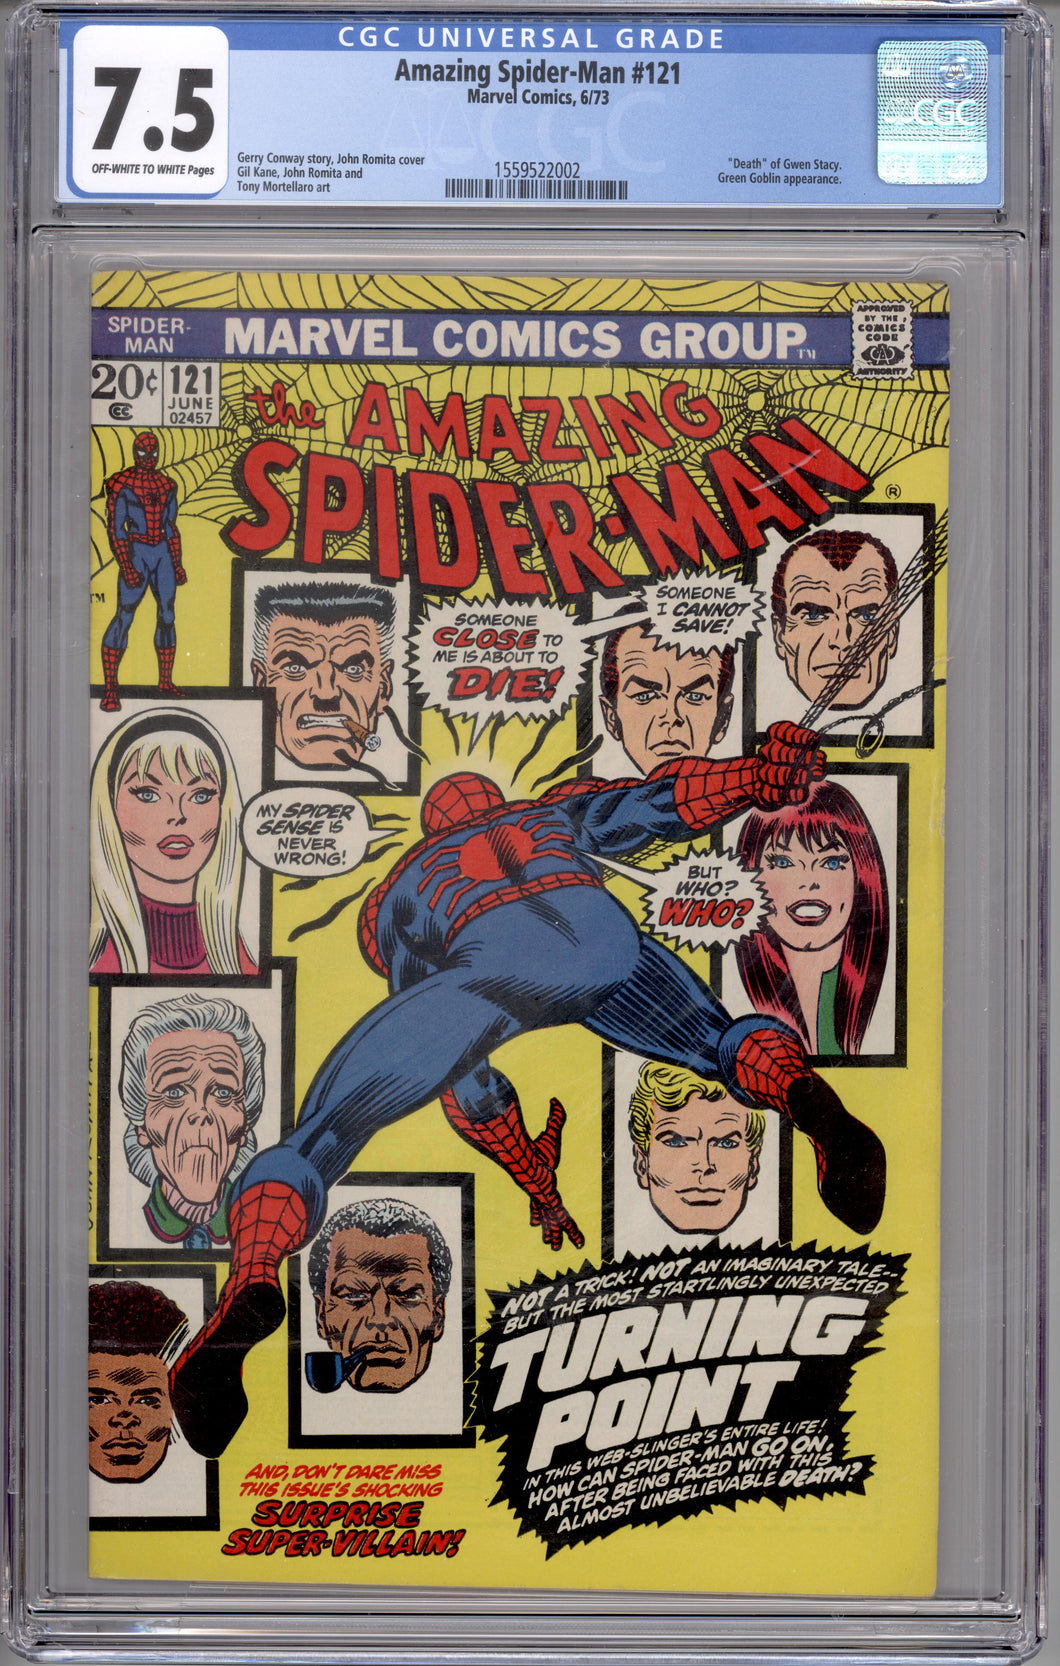 AMAZING SPIDER-MAN #121 CGC 7.5 (OFF WHITE TO WHITE PAGES) DEATH OF GWEN STACY